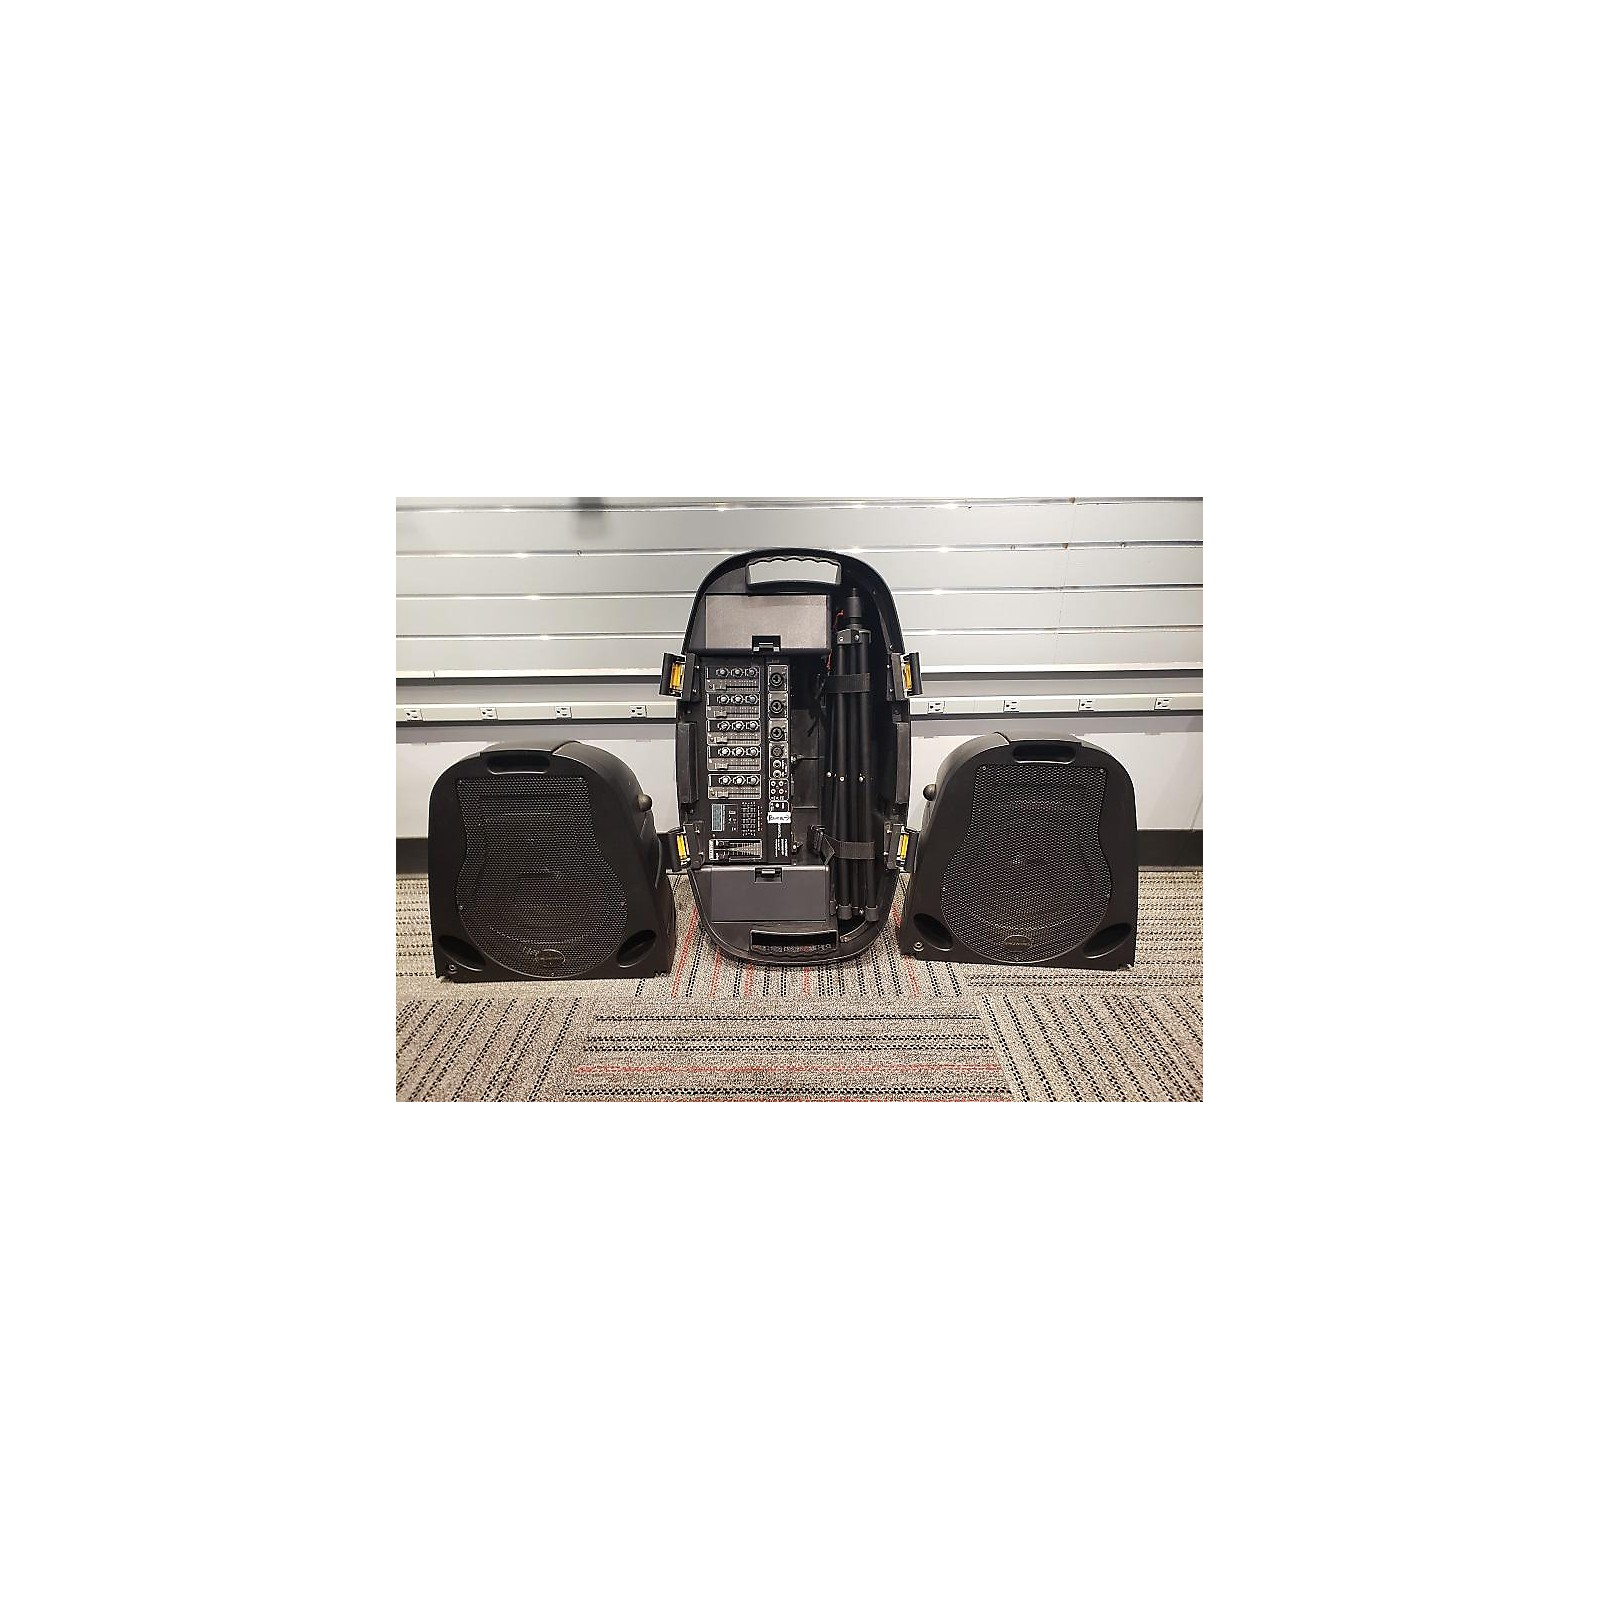 Stageworks Zh0402d10p Sound Package